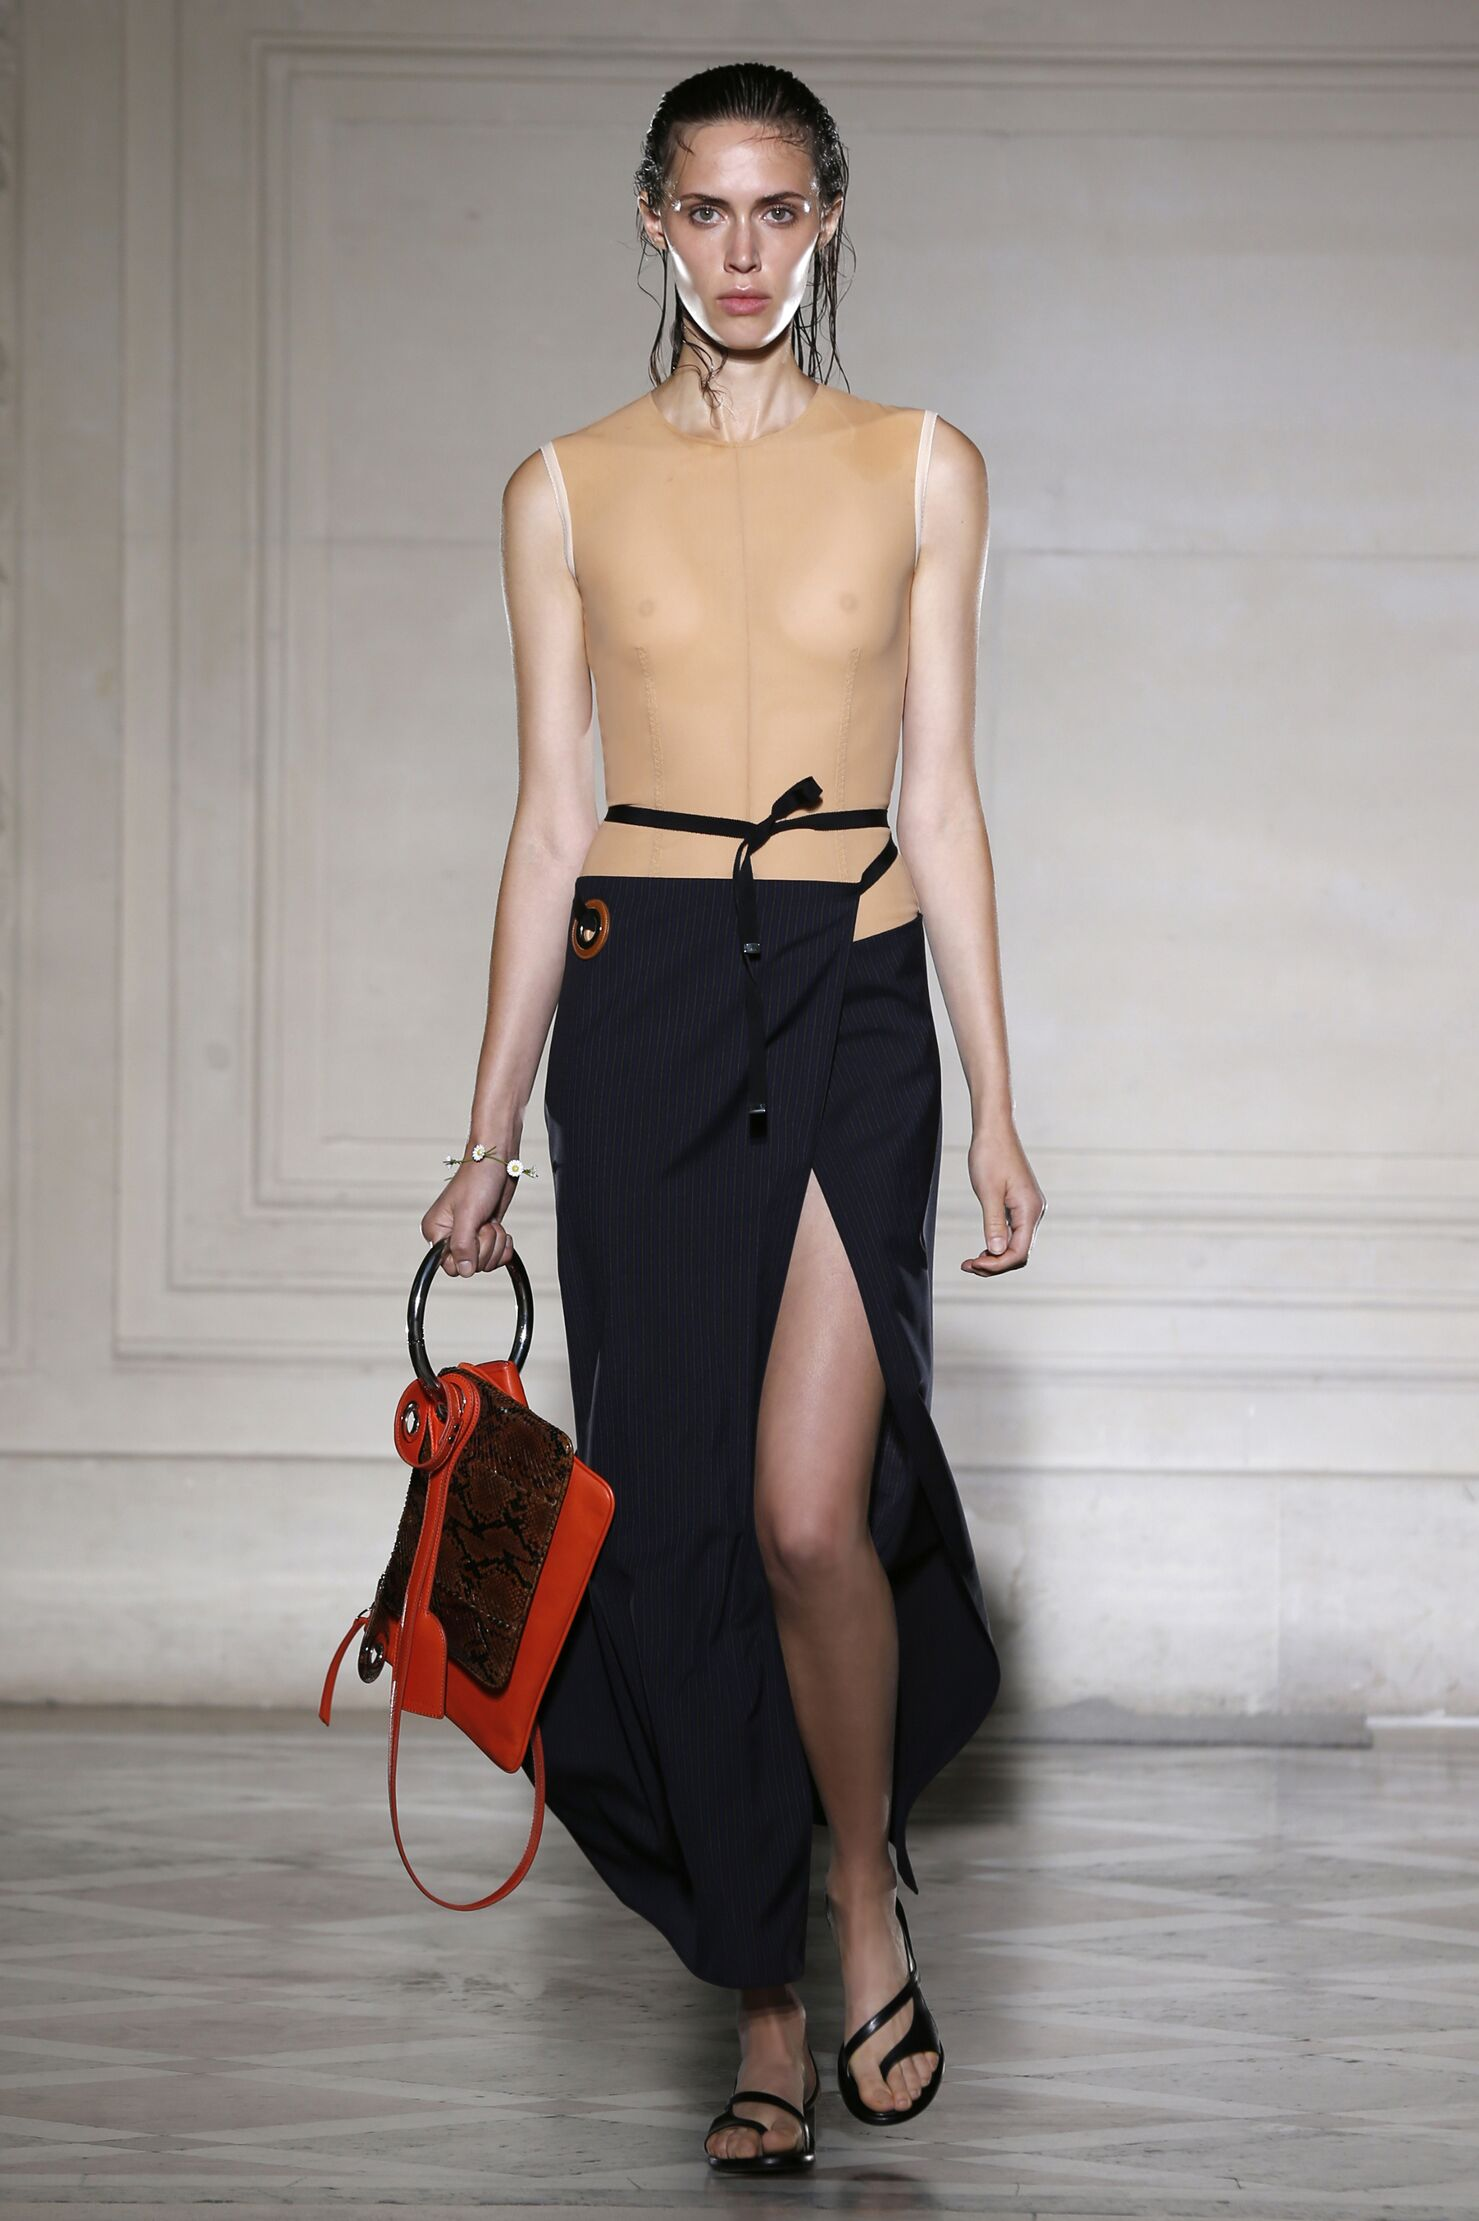 Spring 2015 Woman Fashion Show Maison Martin Margiela